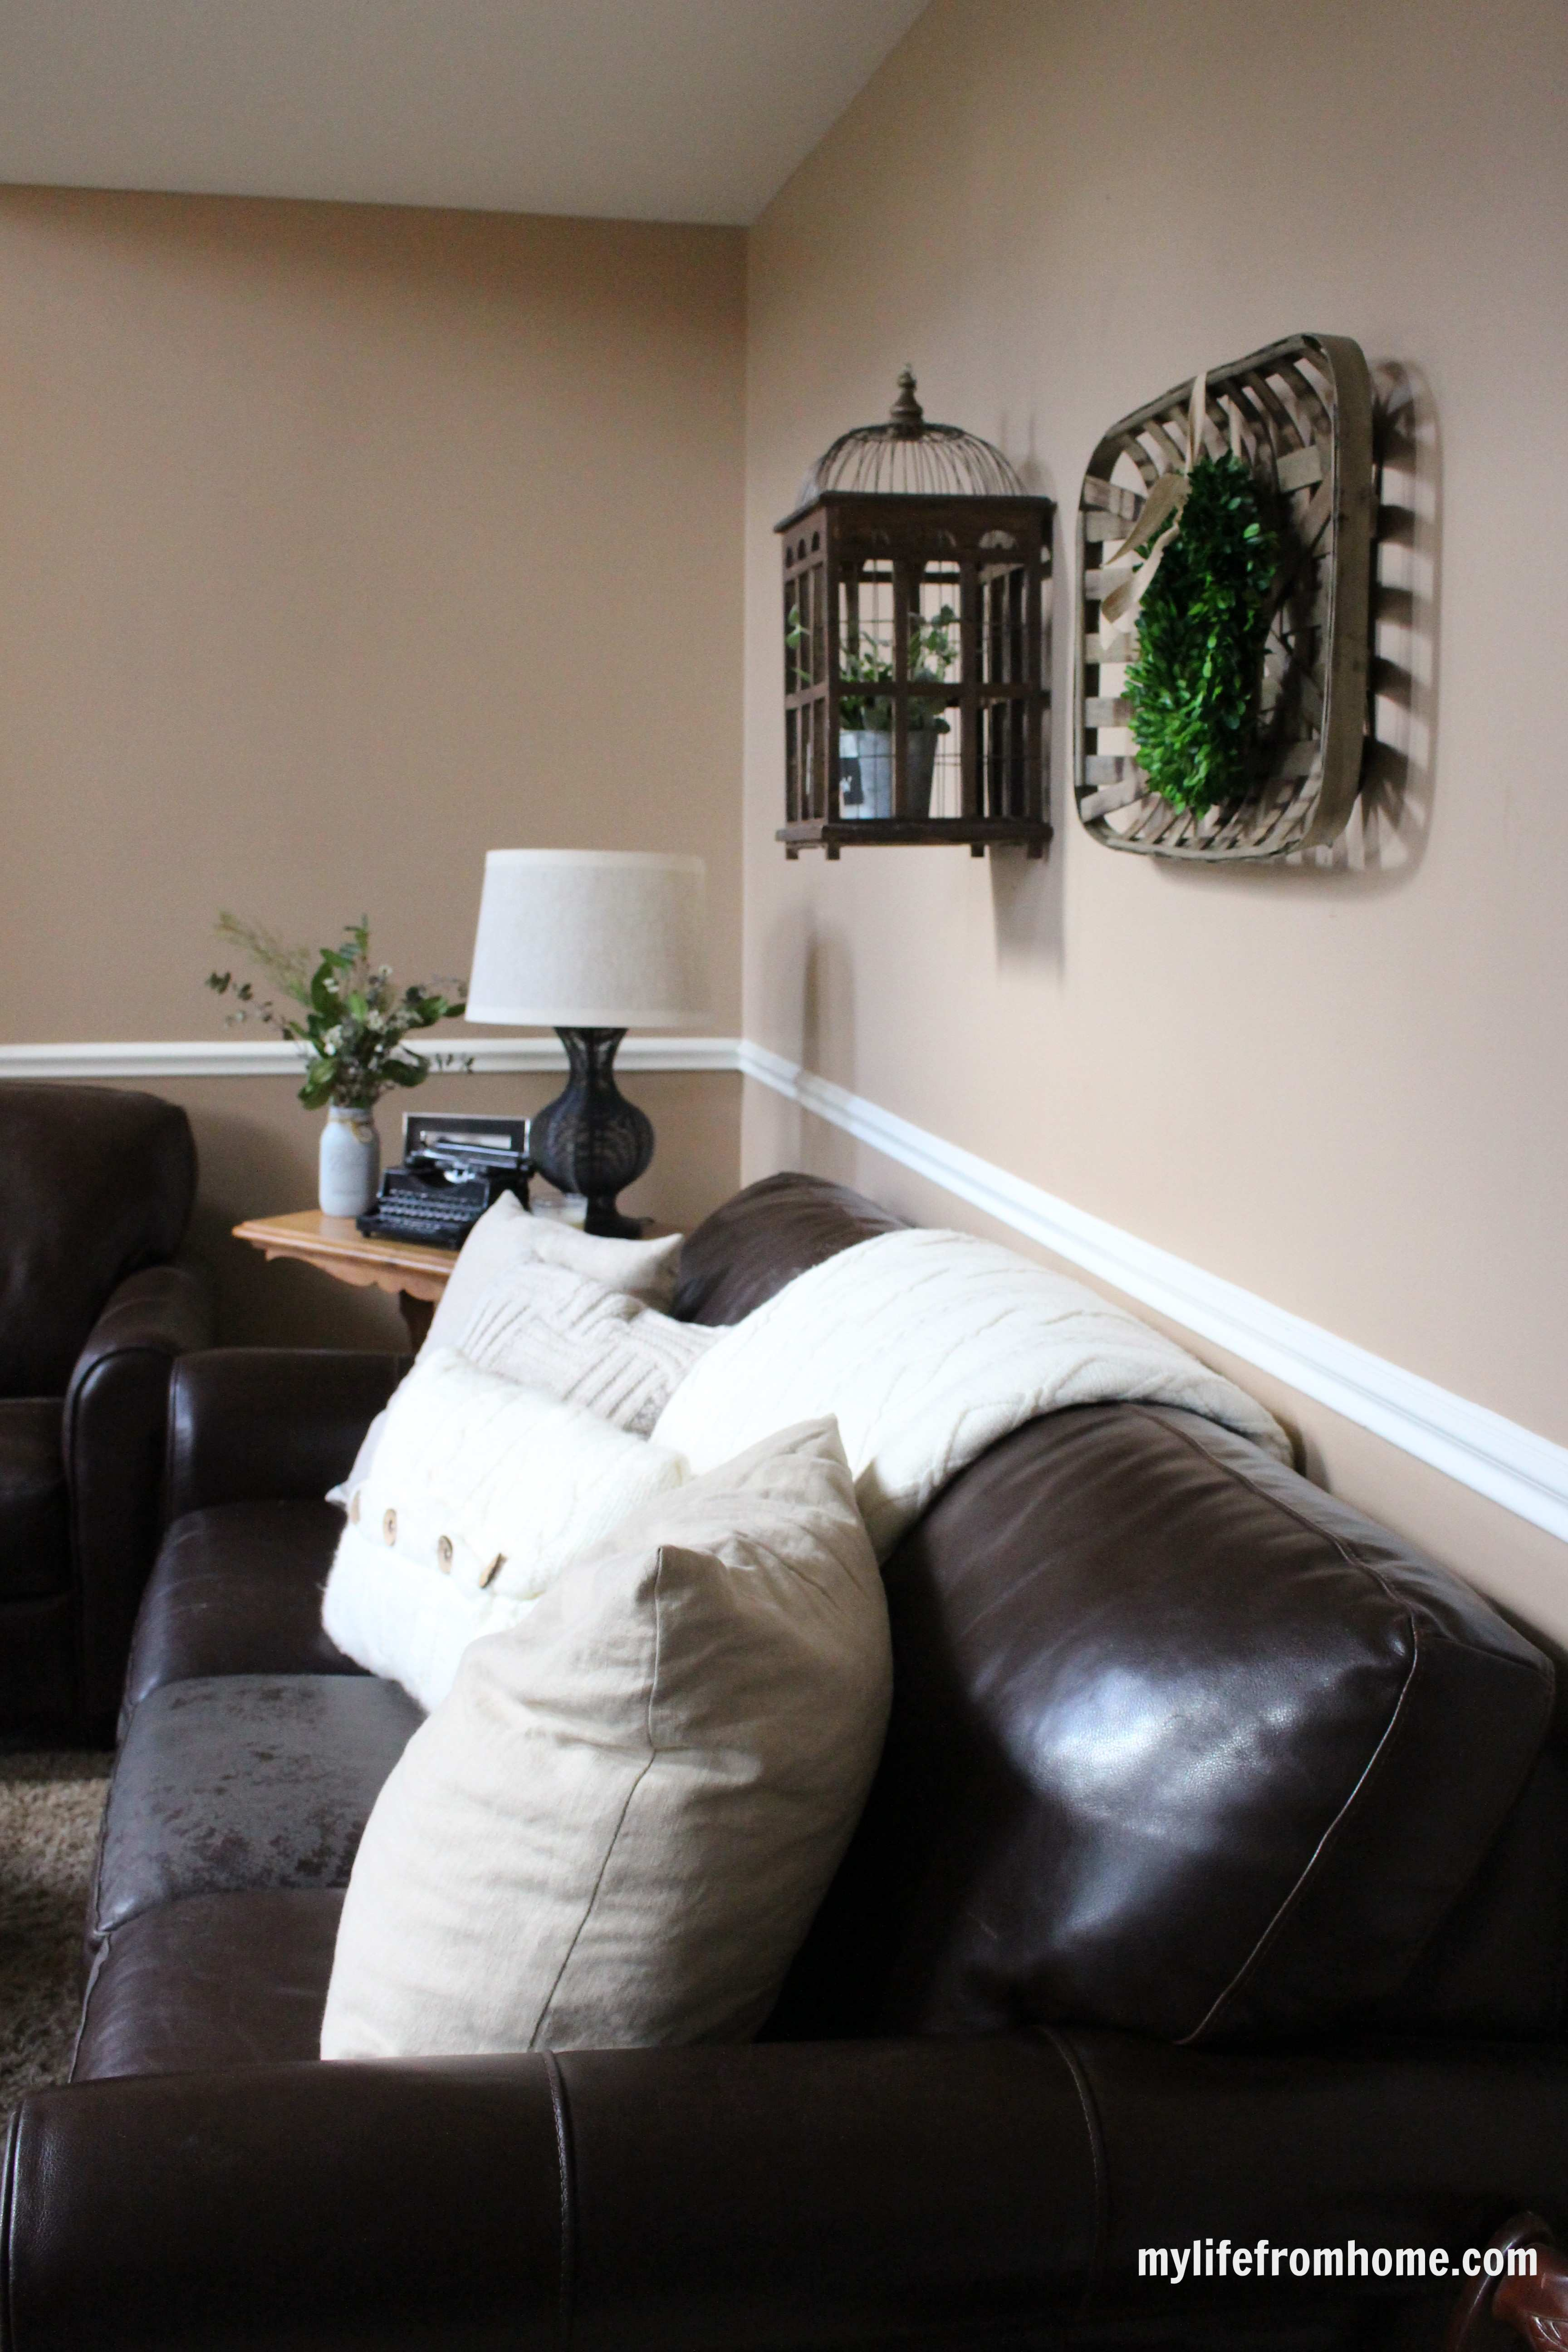 Family Room for Spring Home Tour by www.mylifefromhome.com